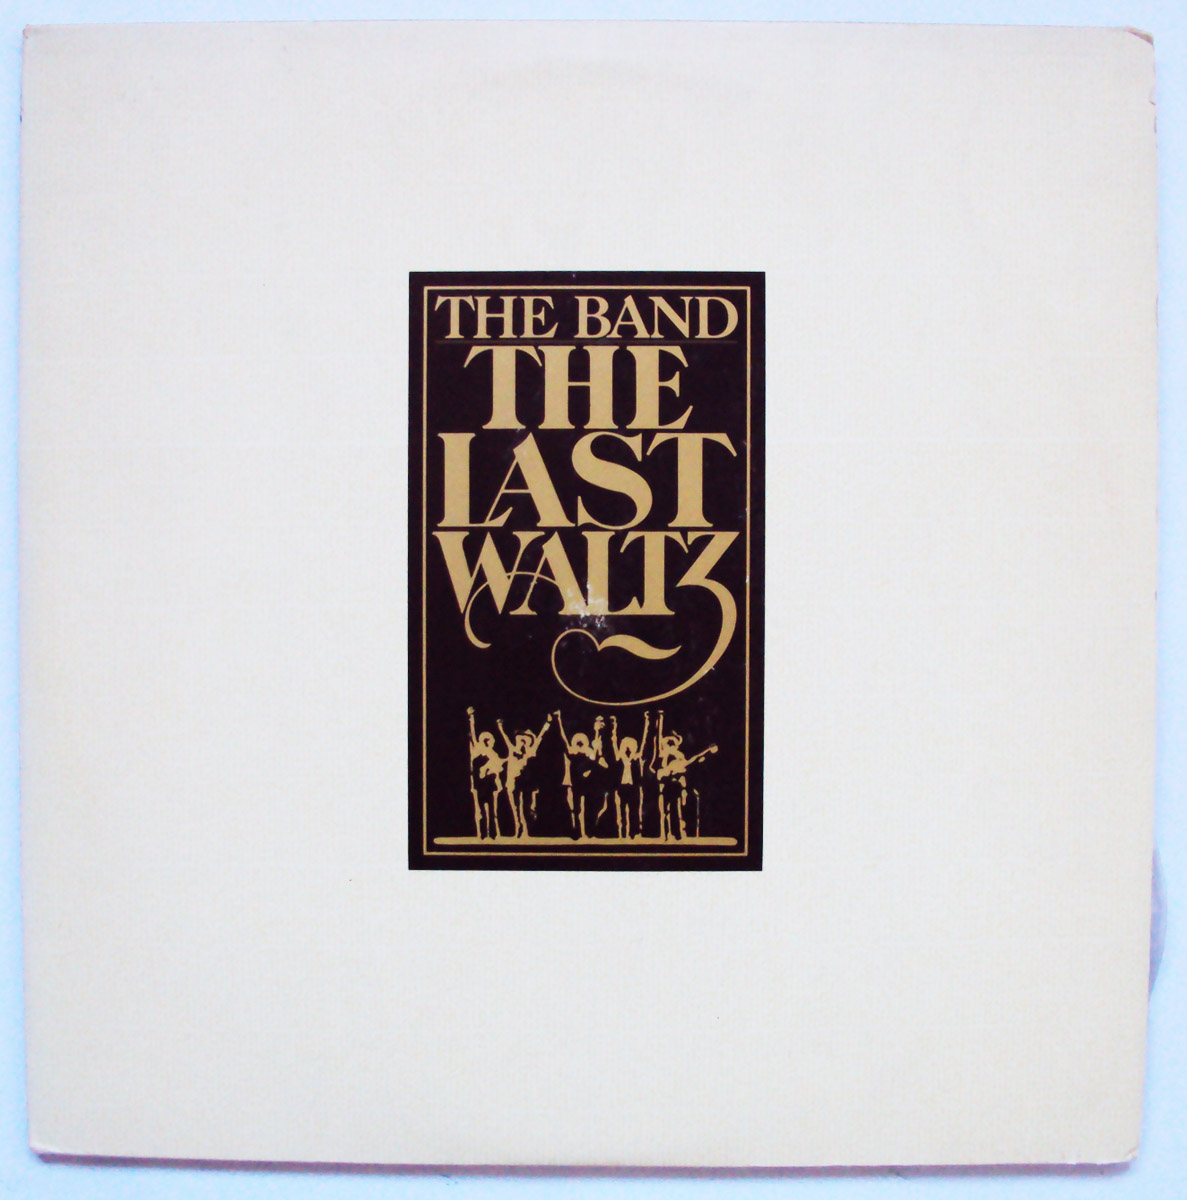 Band, the the last waltz